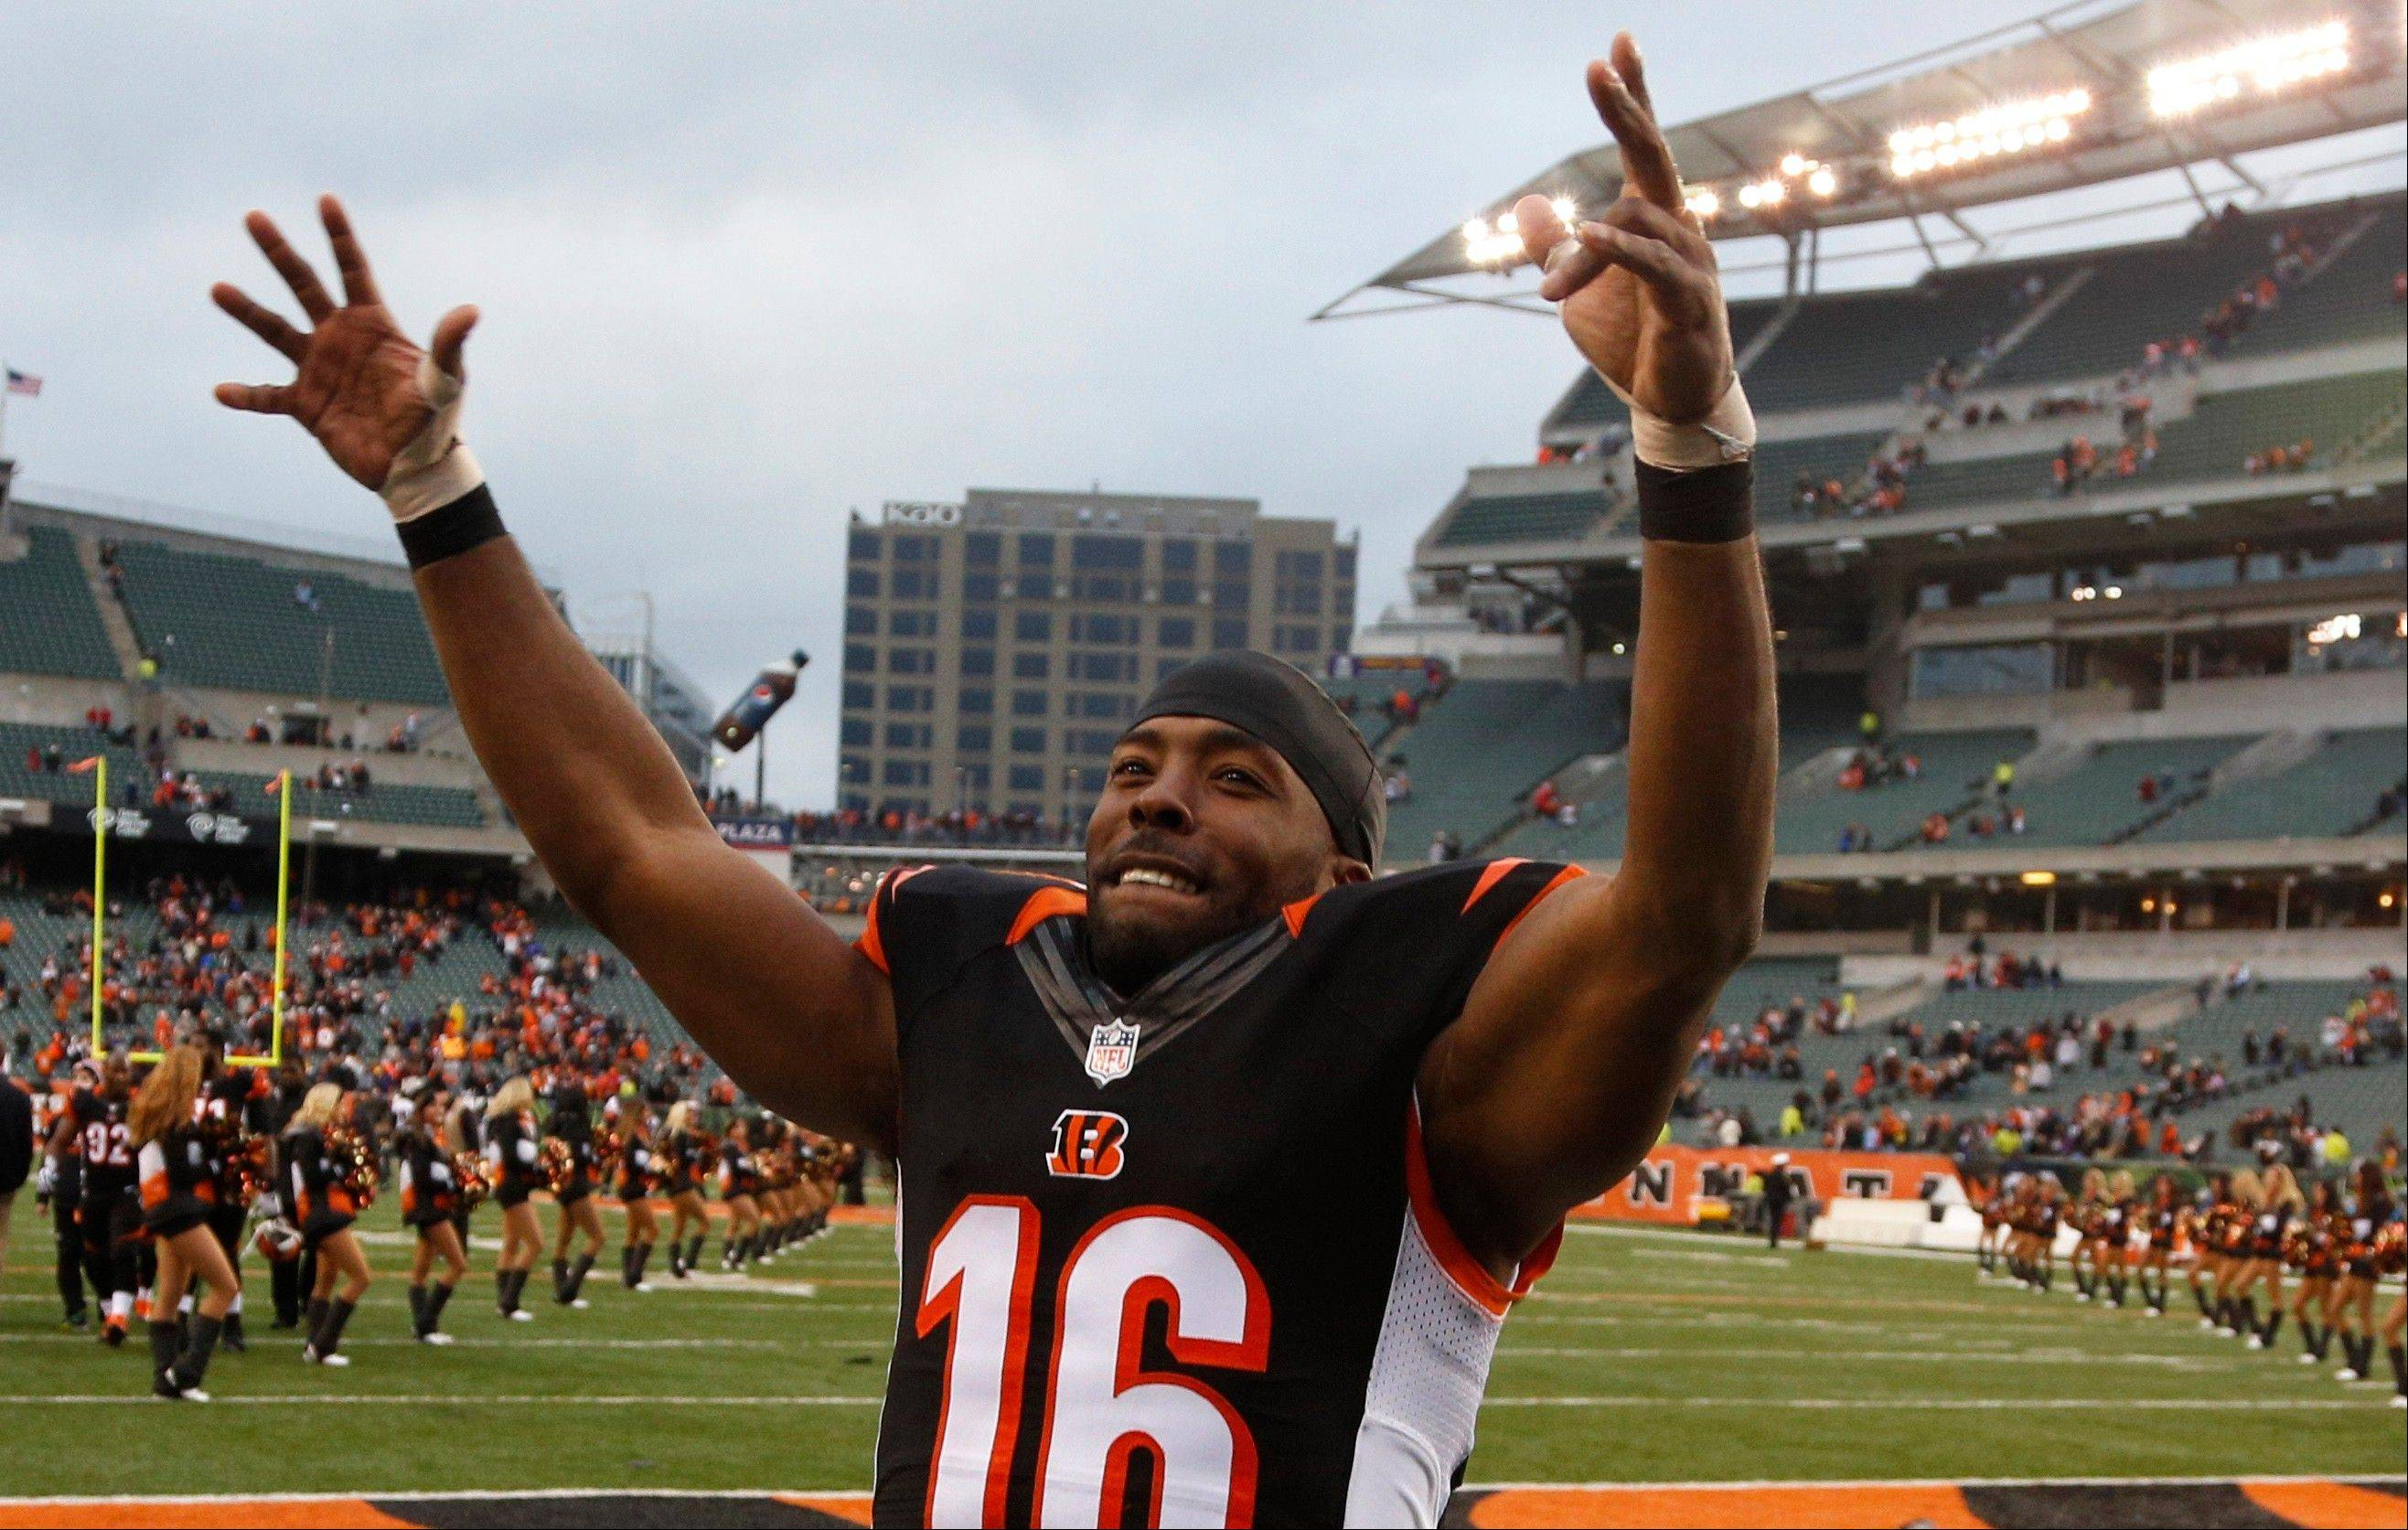 Wide receiver Andrew Hawkins celebrates after the Bengals defeated the Baltimore Ravens 34-17 in Sunday's game in Cincinnati.